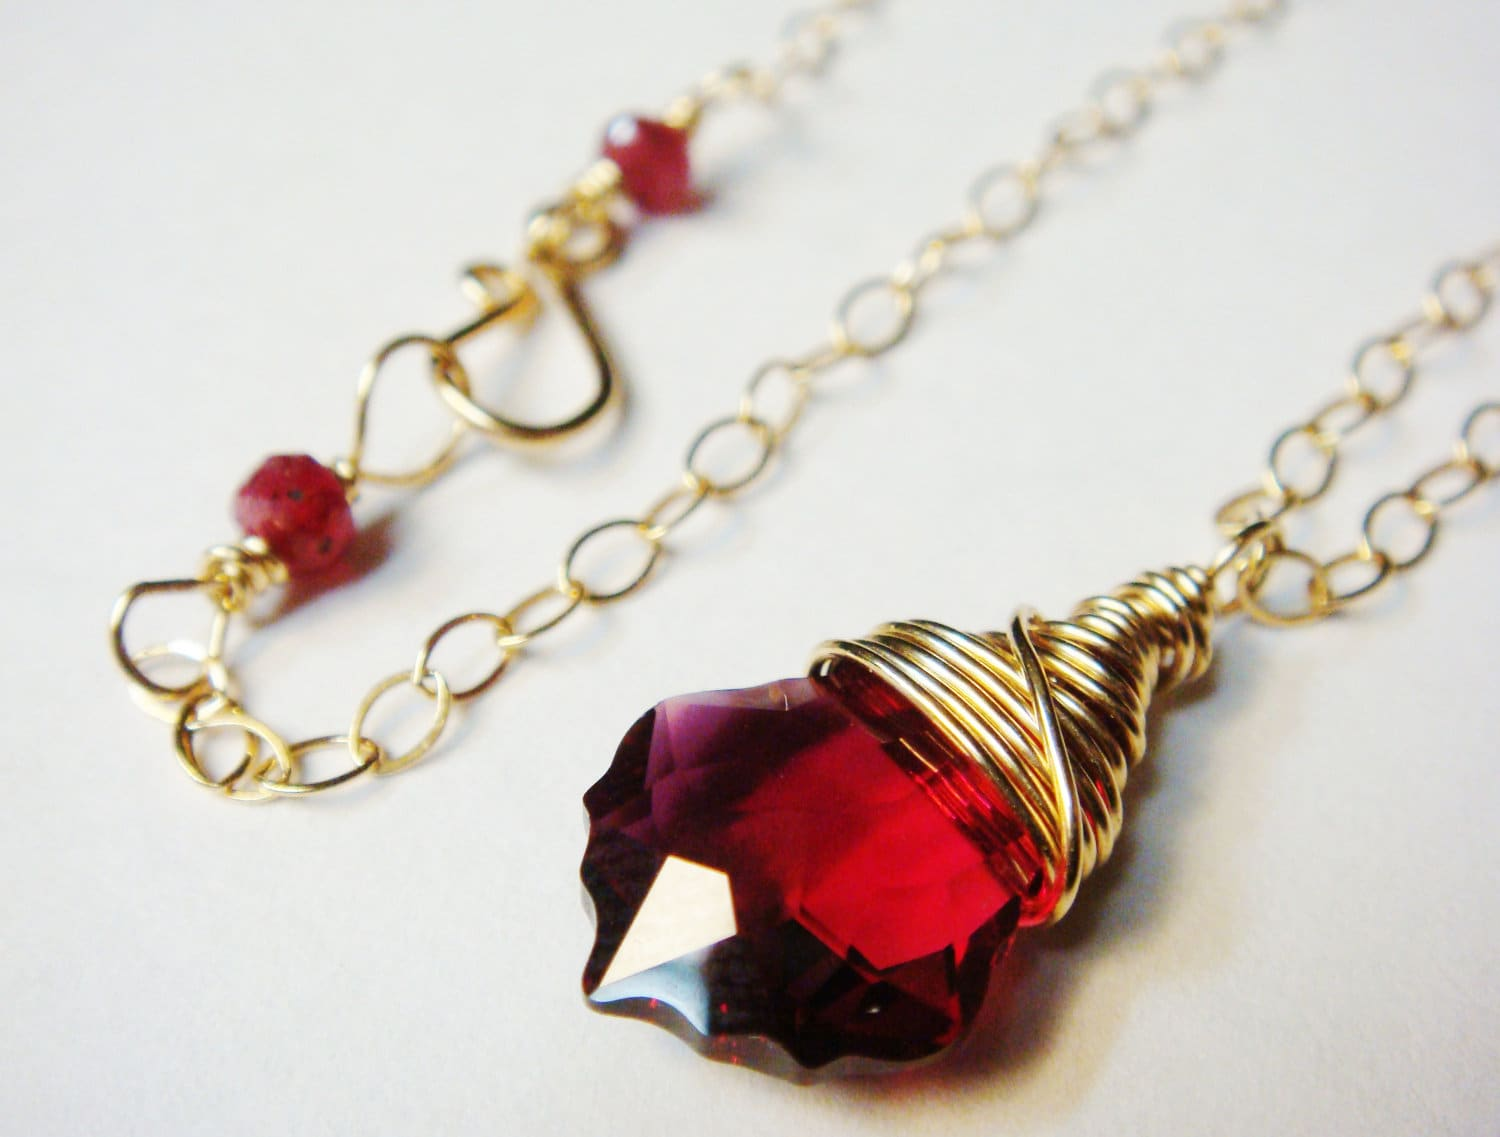 upscale necklace crop jewellery product editor the shop high false stenzhorn ruby scale red rose subsampling